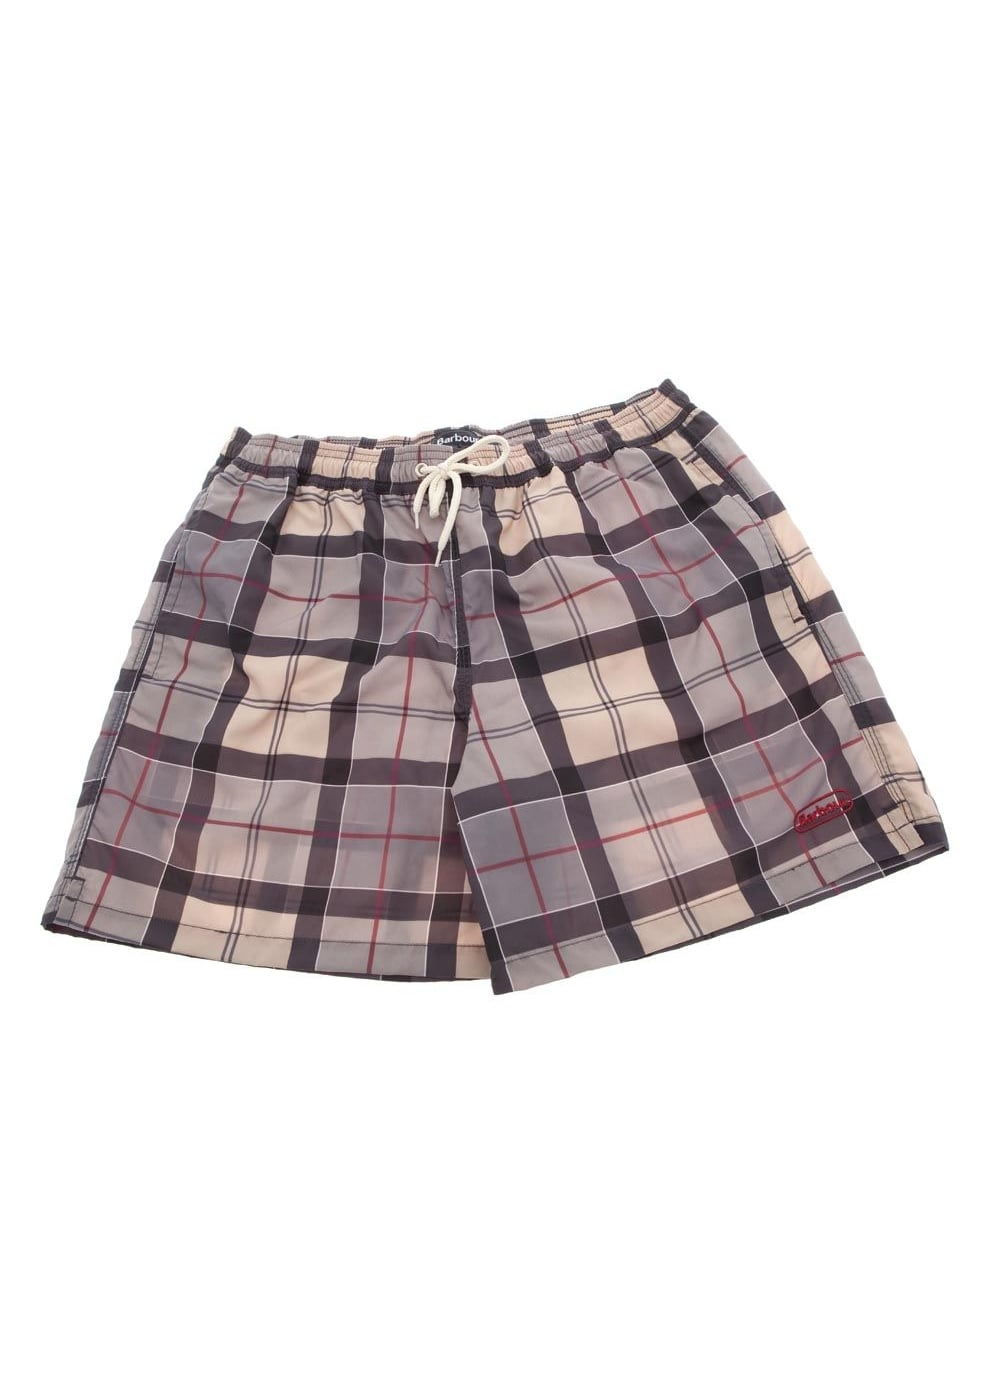 Barbour Lomond Tartan Shorts Large Image